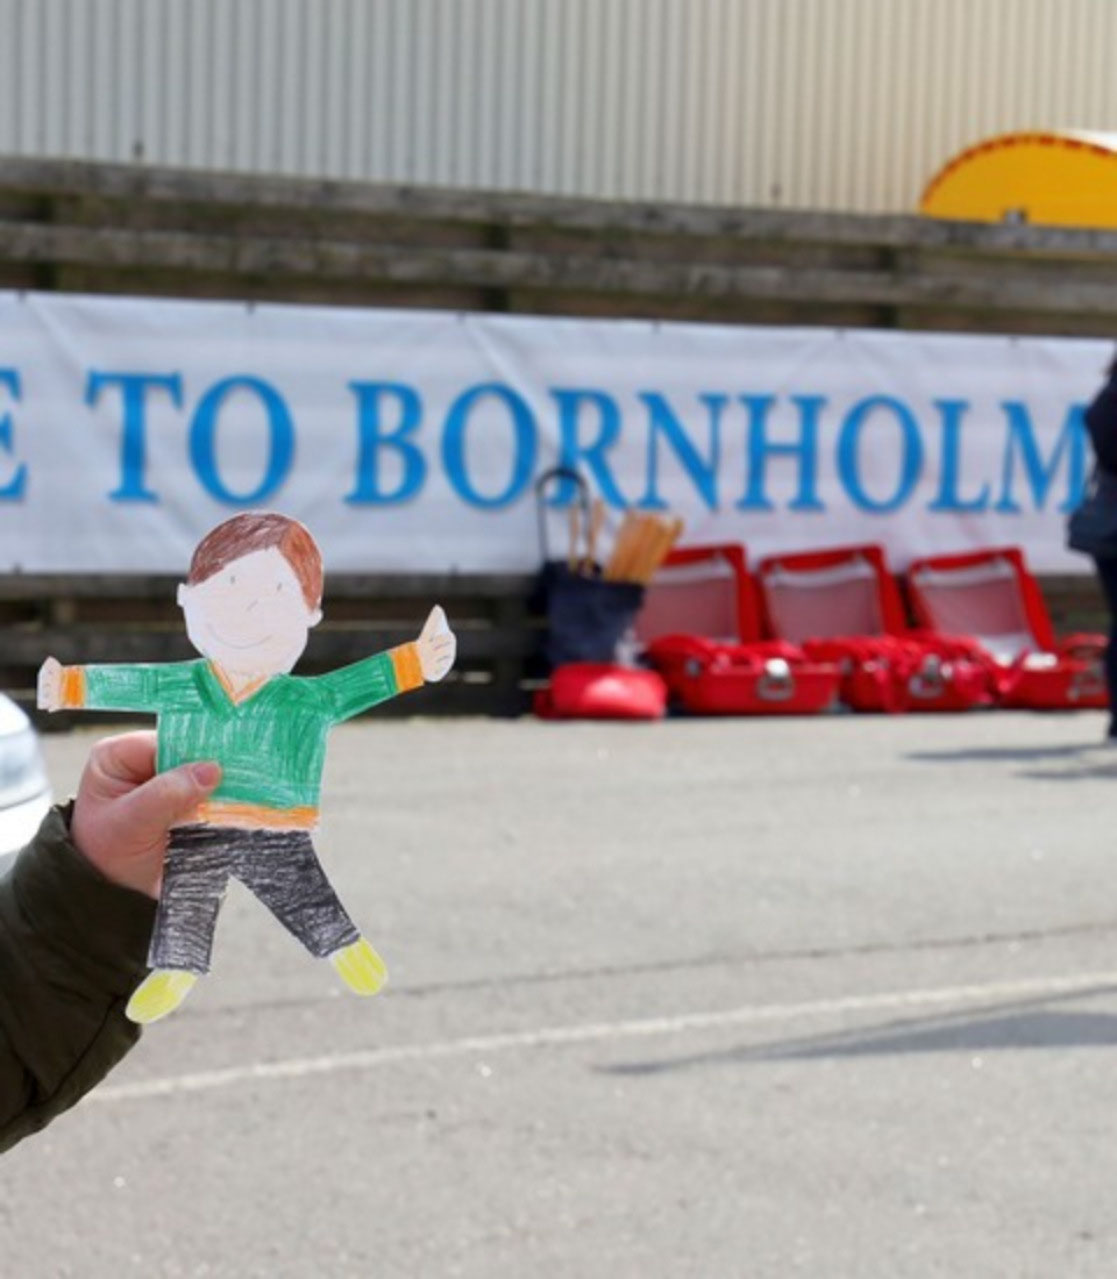 Flat Stanley welcoming everyone to Bornholm